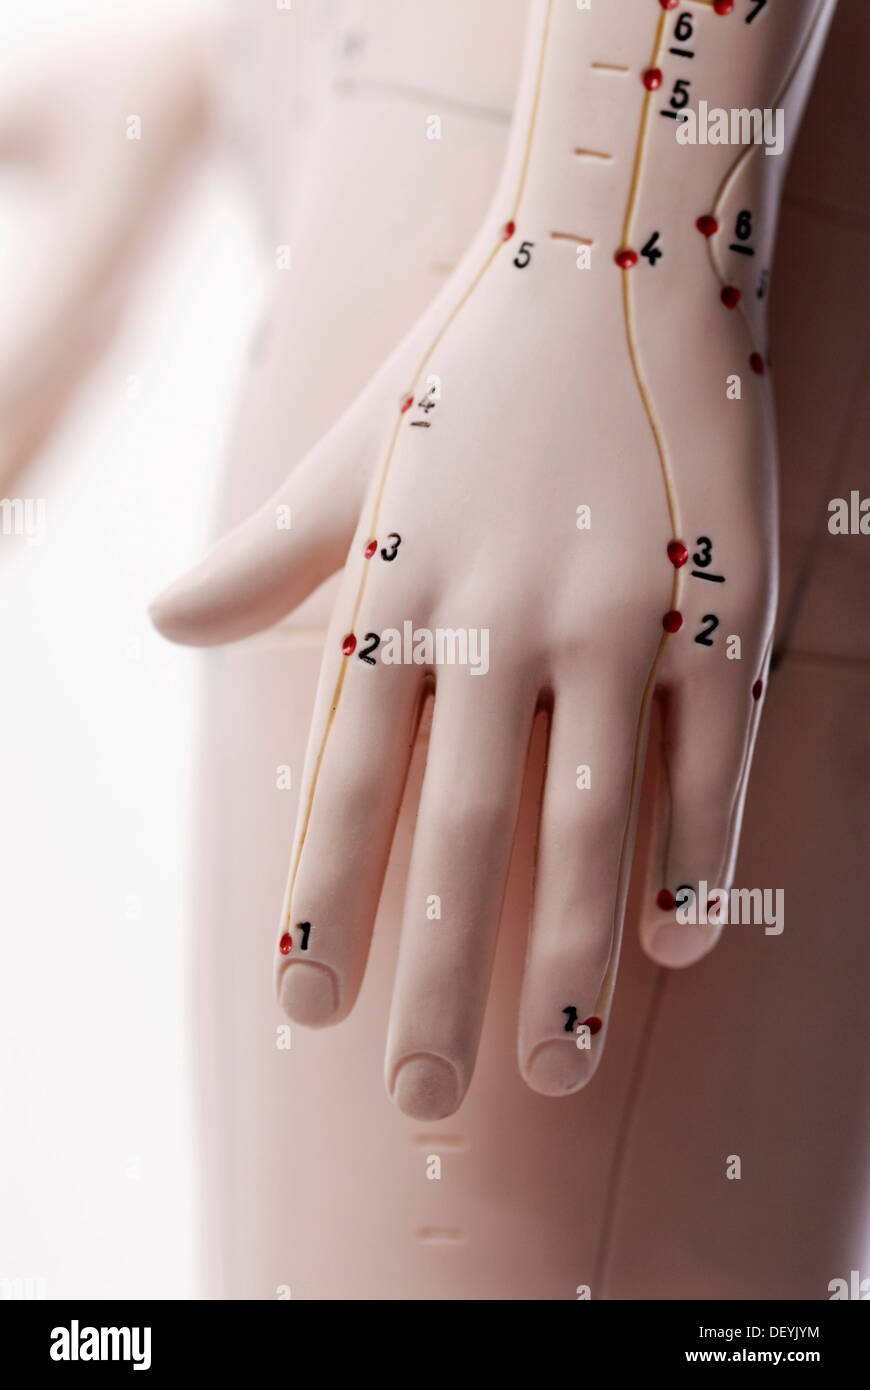 Anatomical model, hand with acupuncture points - Stock Image